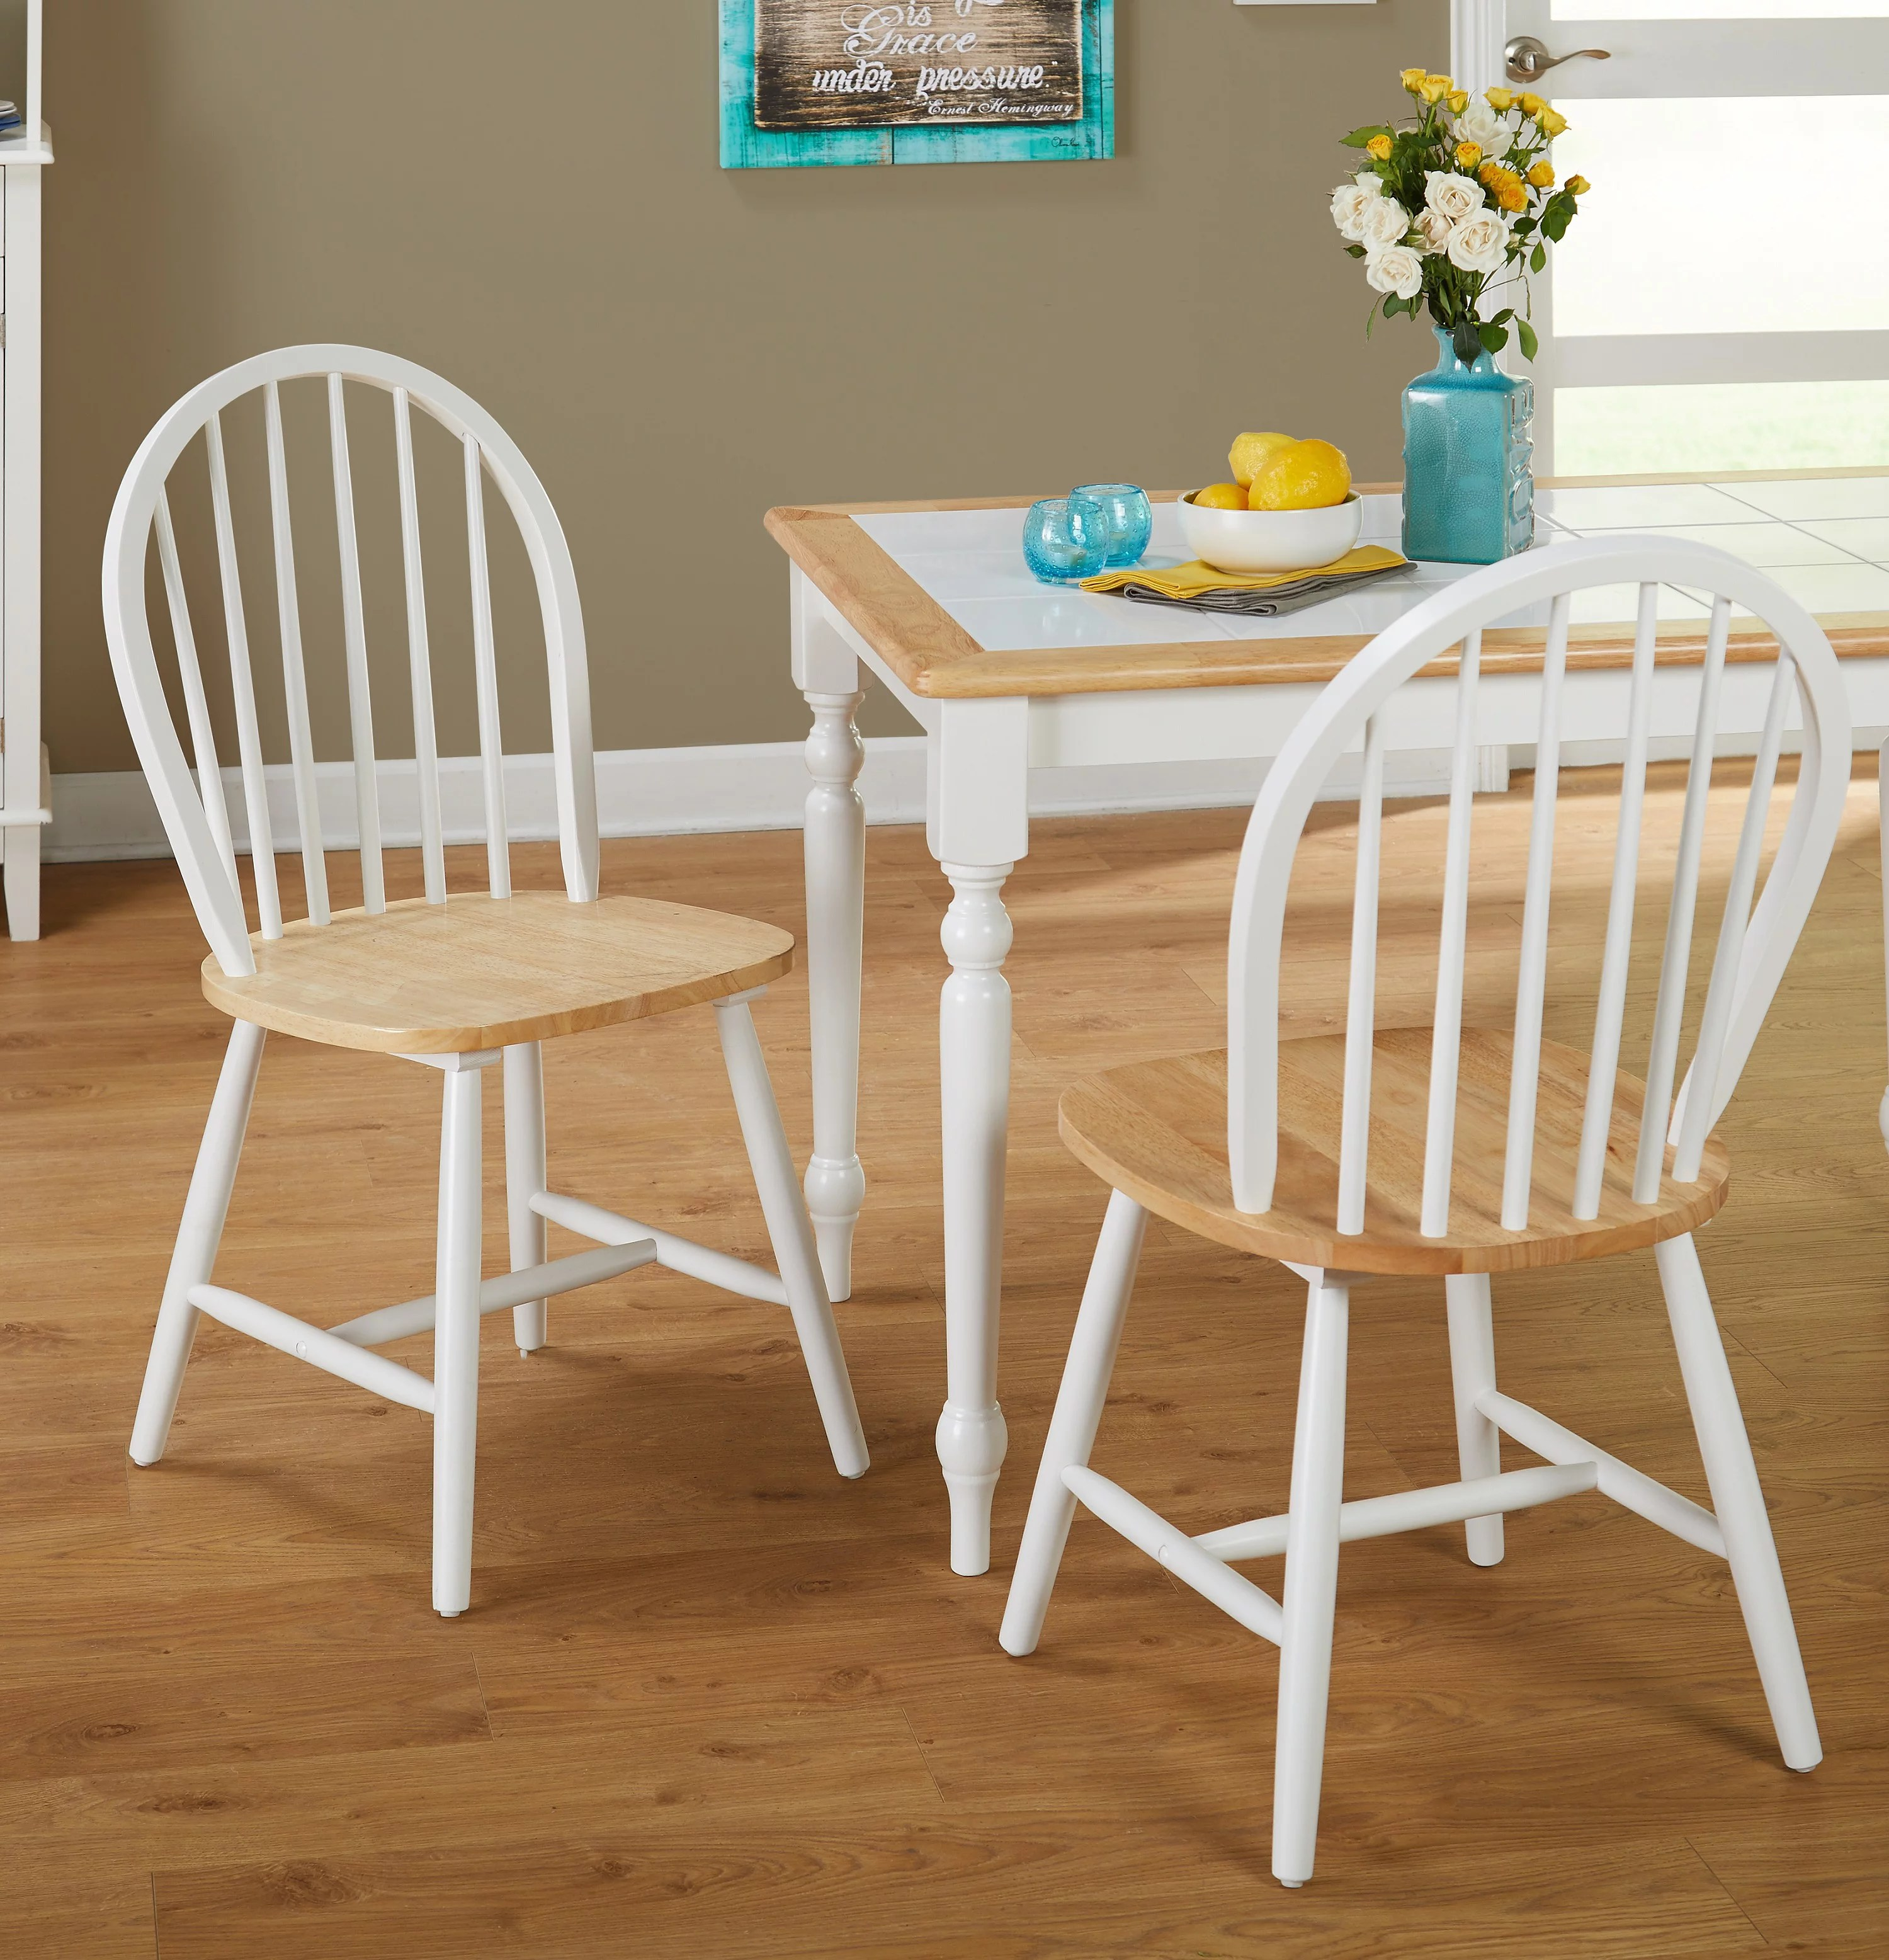 windsor kitchen chairs hammock chair stand india dining white natural set of 2 walmart com